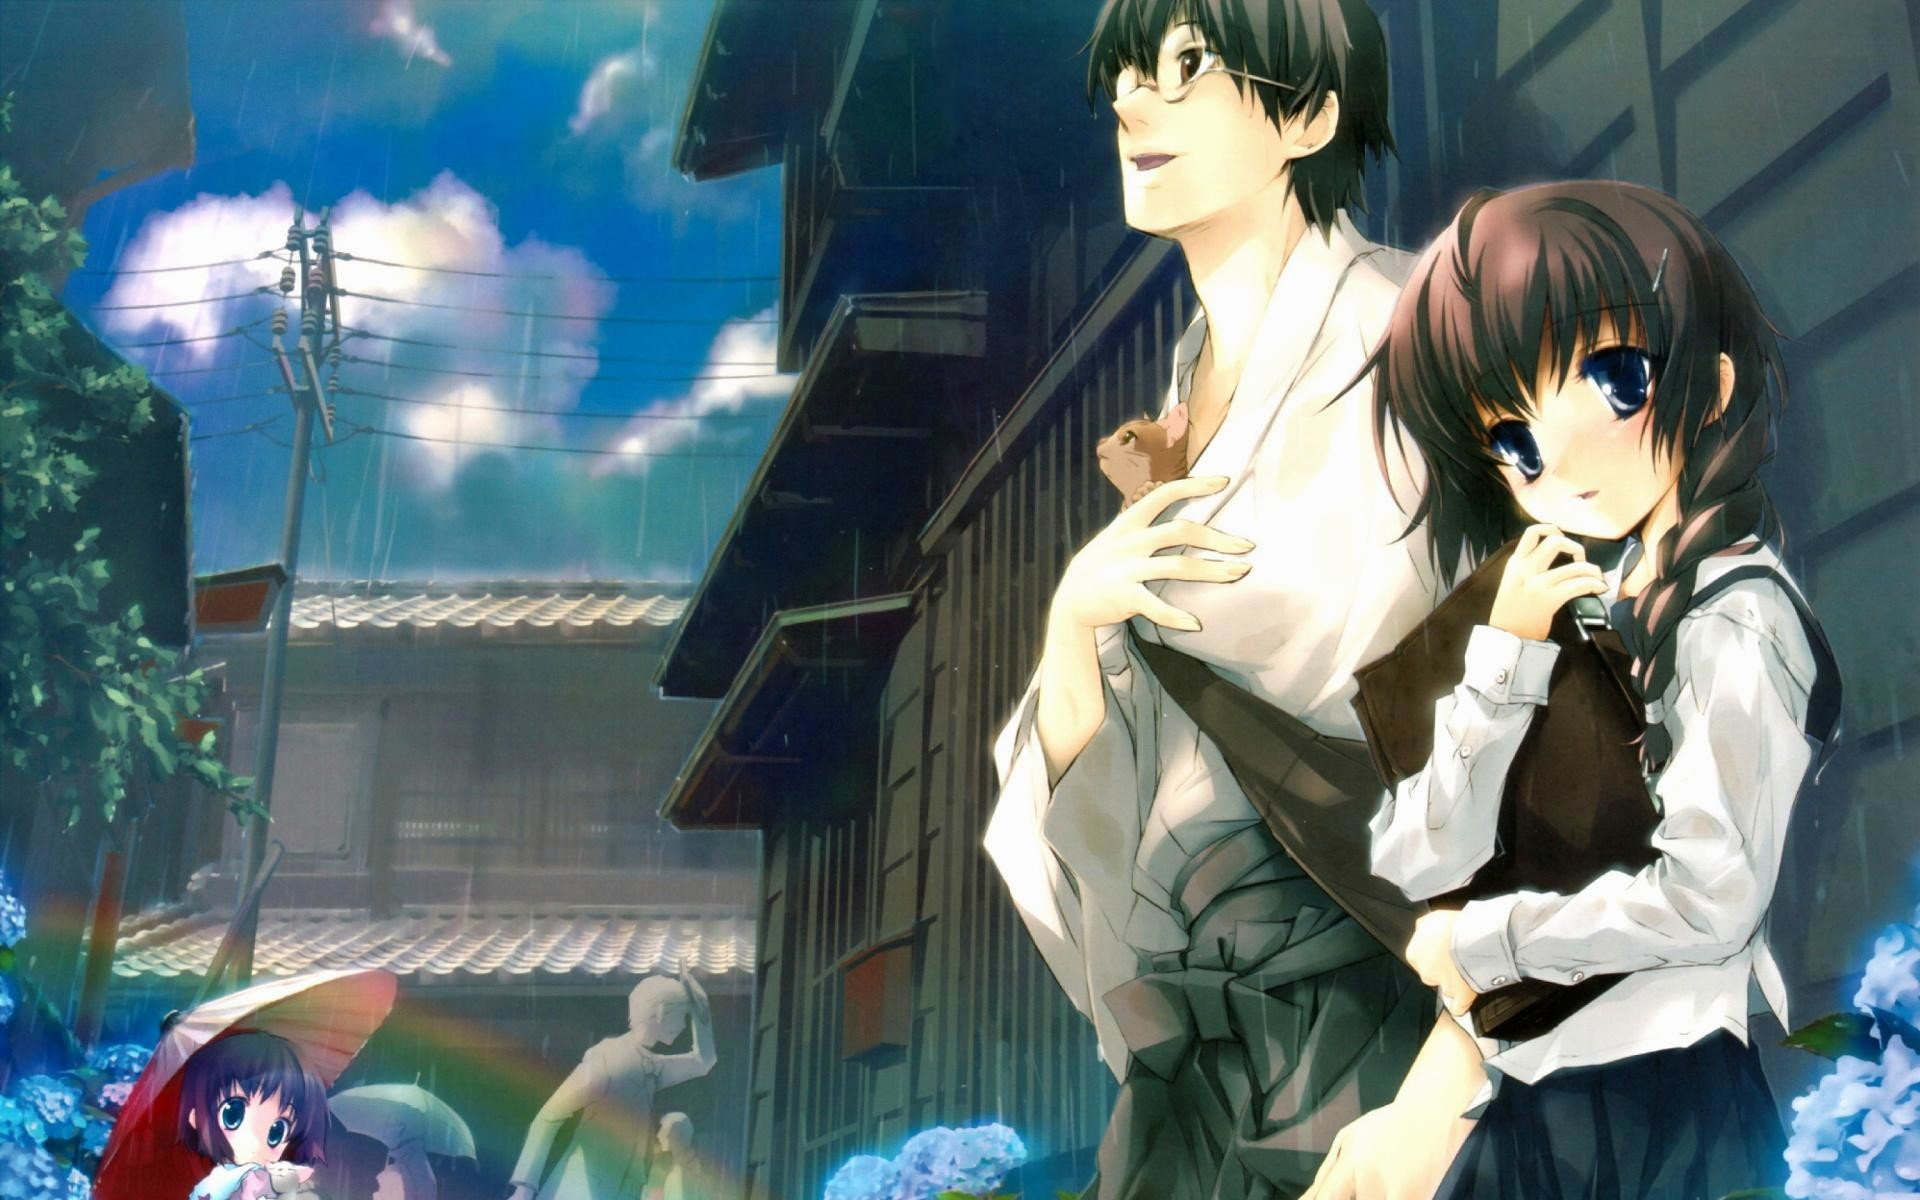 wallpaper.wiki-HD-Cute-Anime-Couple-Images-PIC-